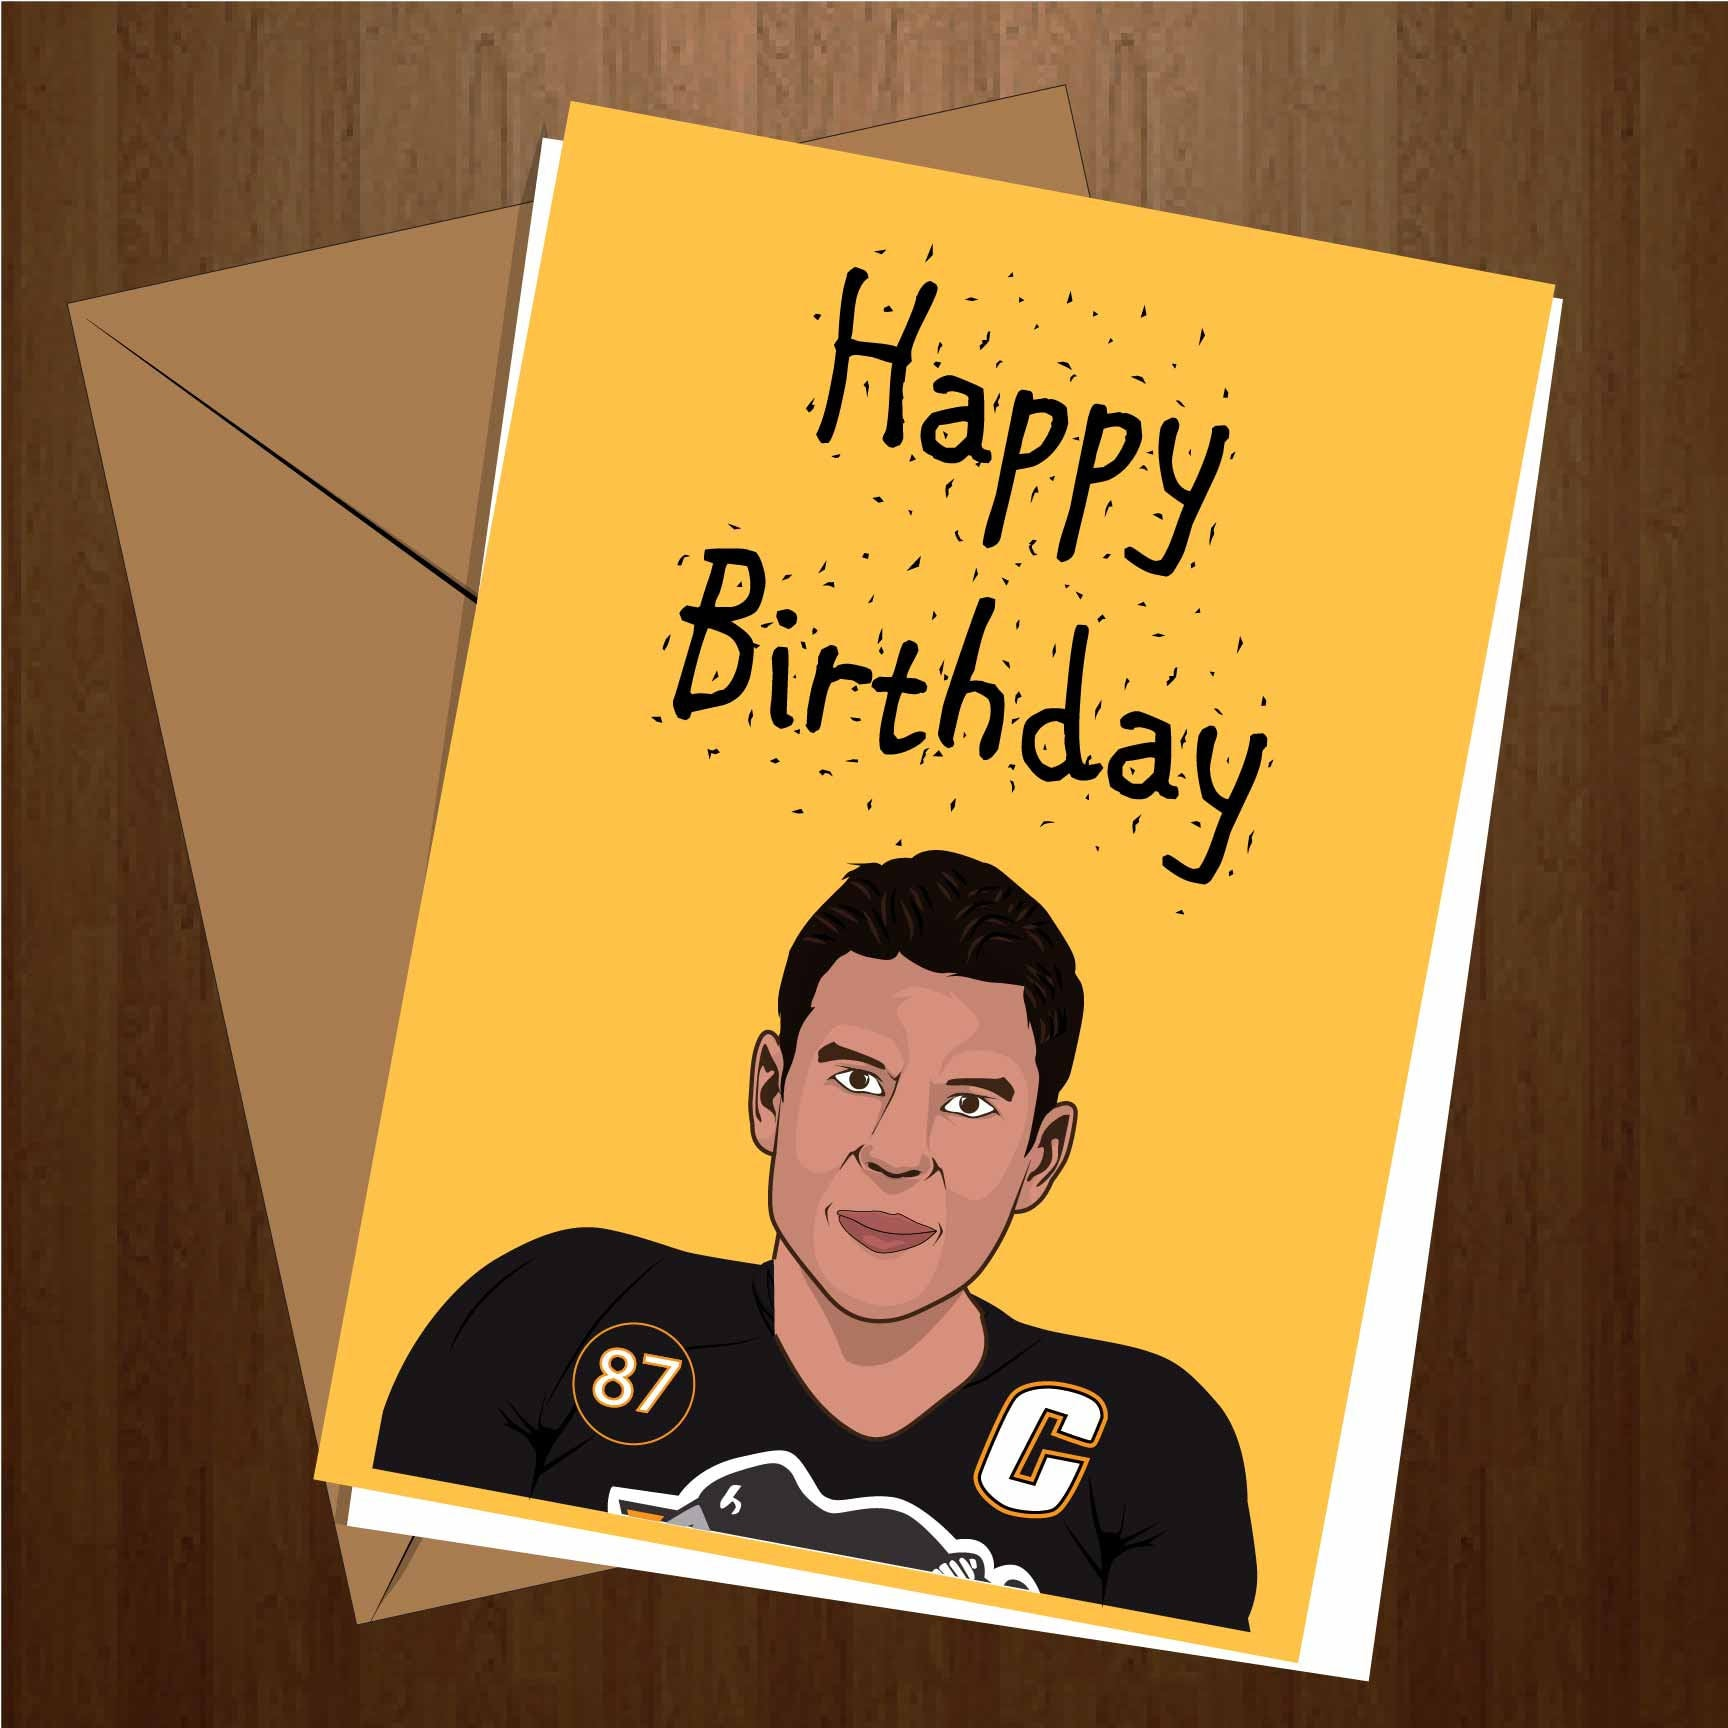 Sidney Crosby happy birthday greeting cards. Pittsburgh